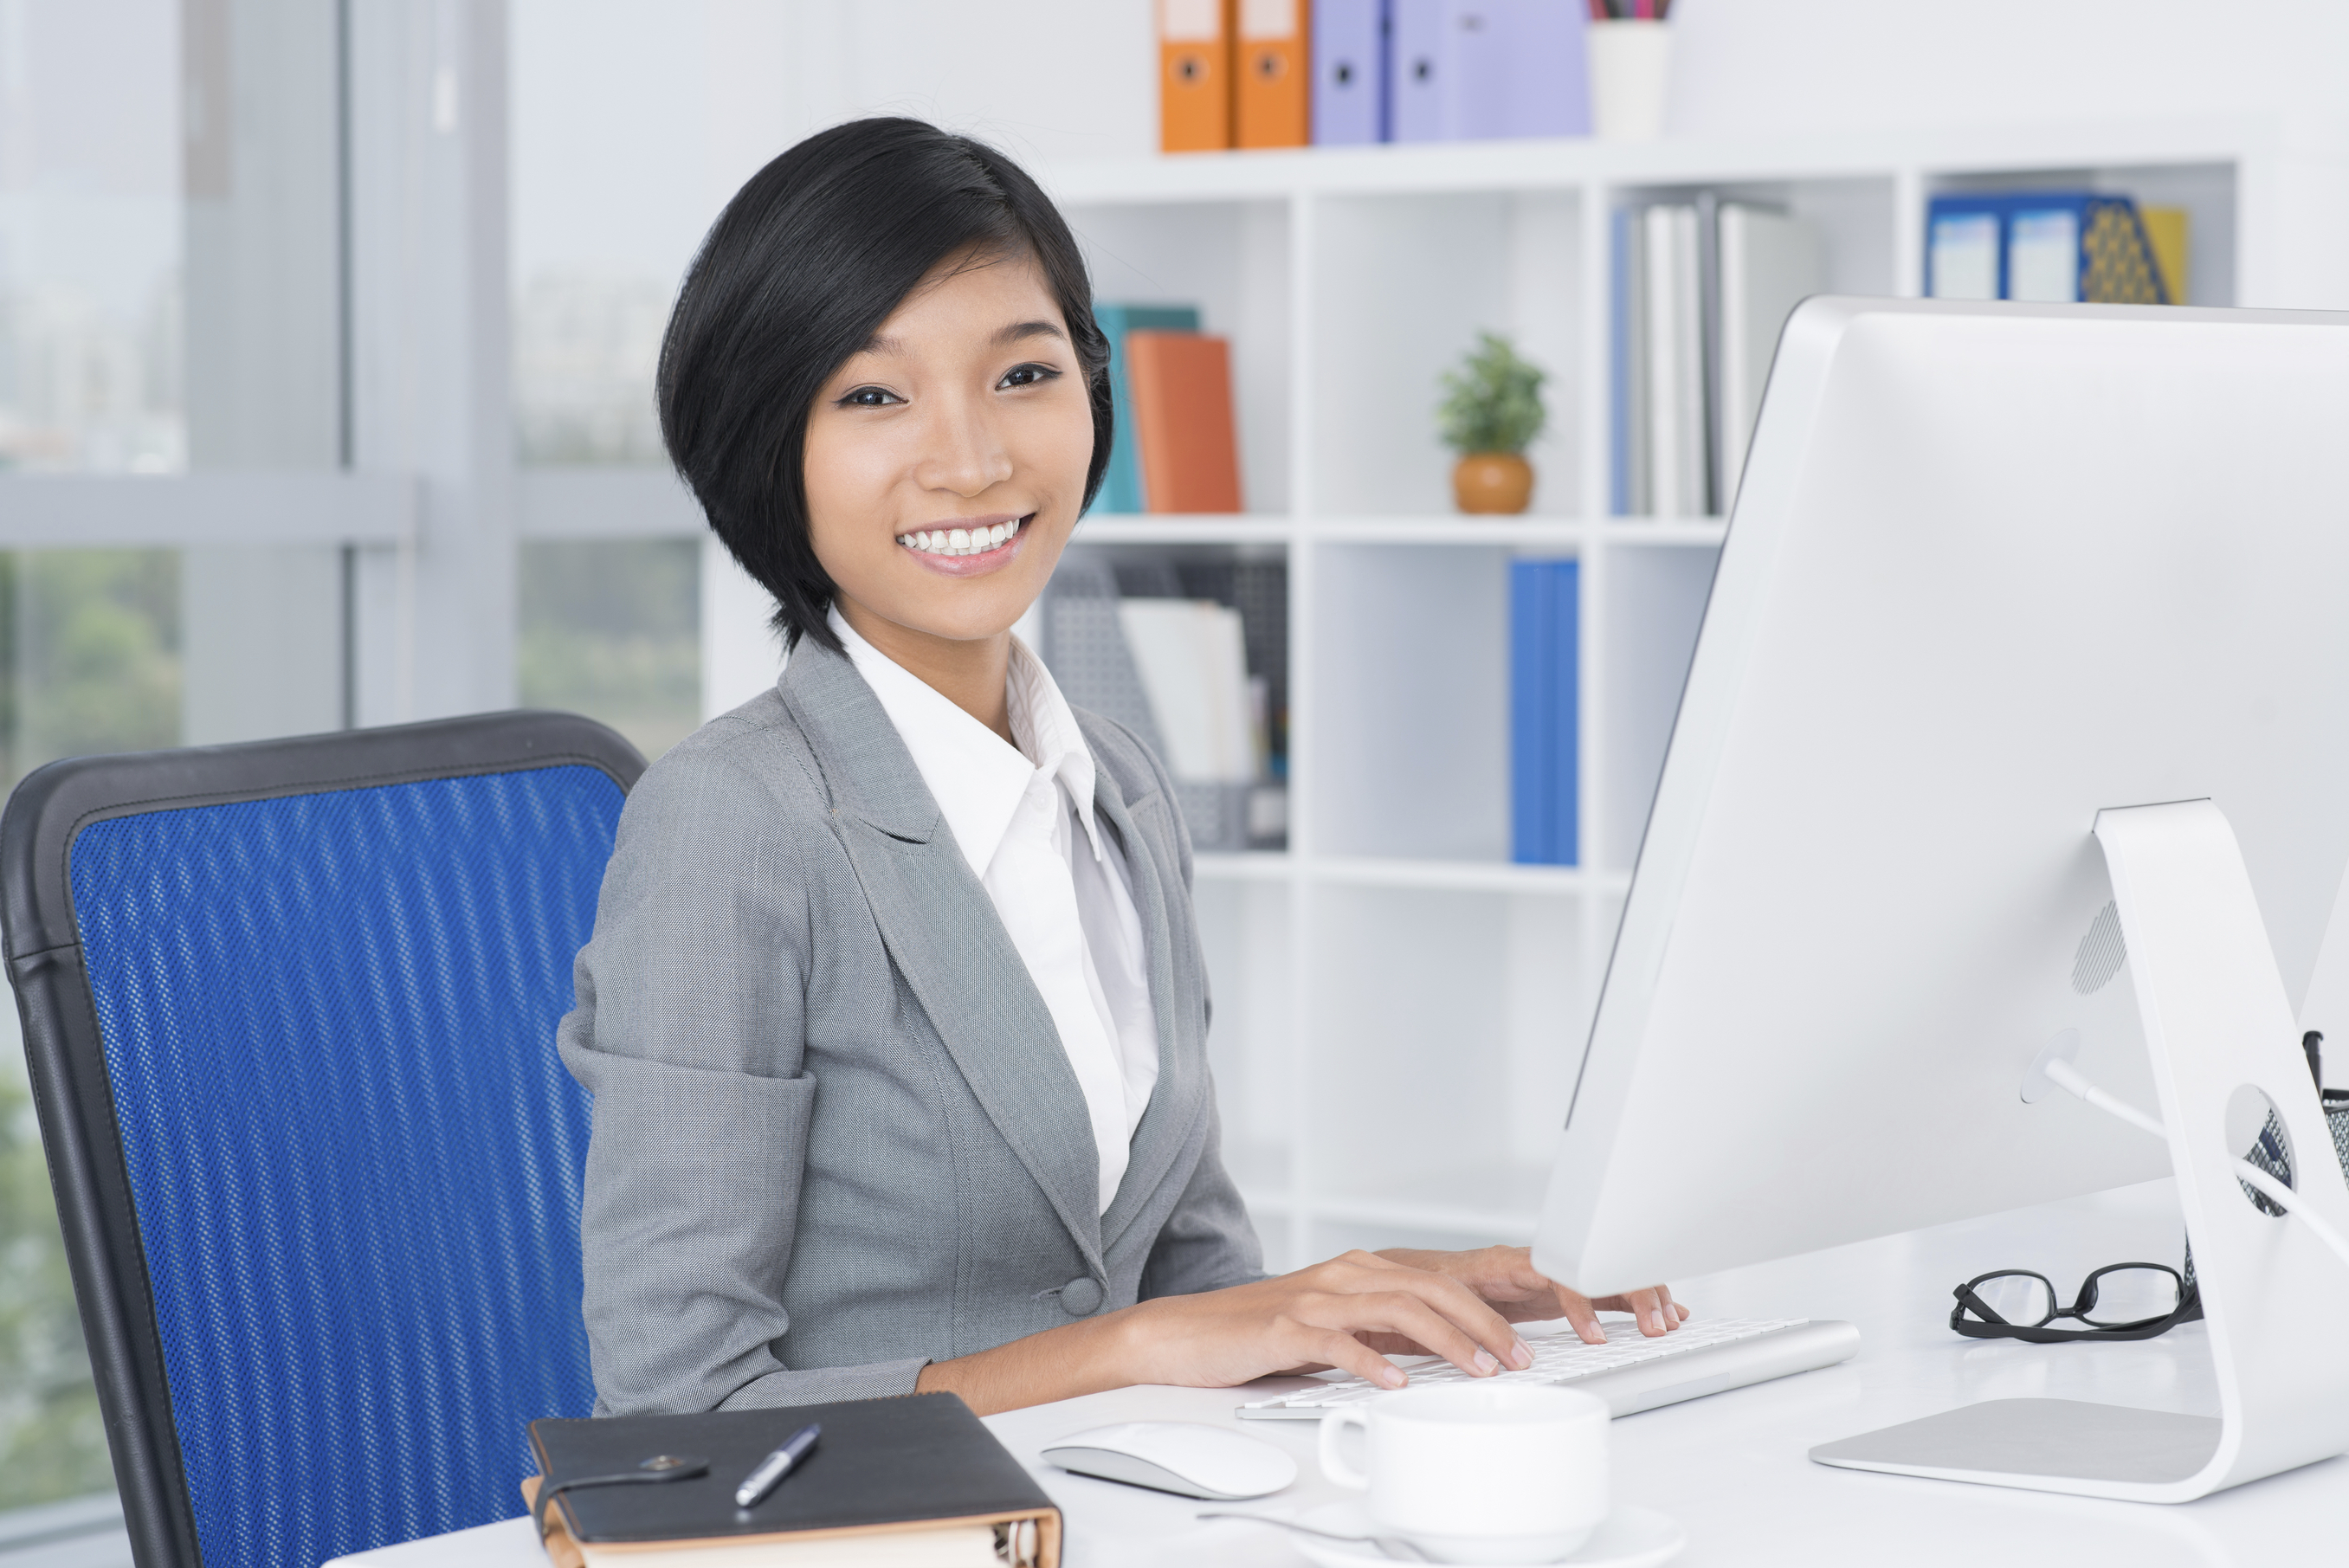 qualifications for office assistant